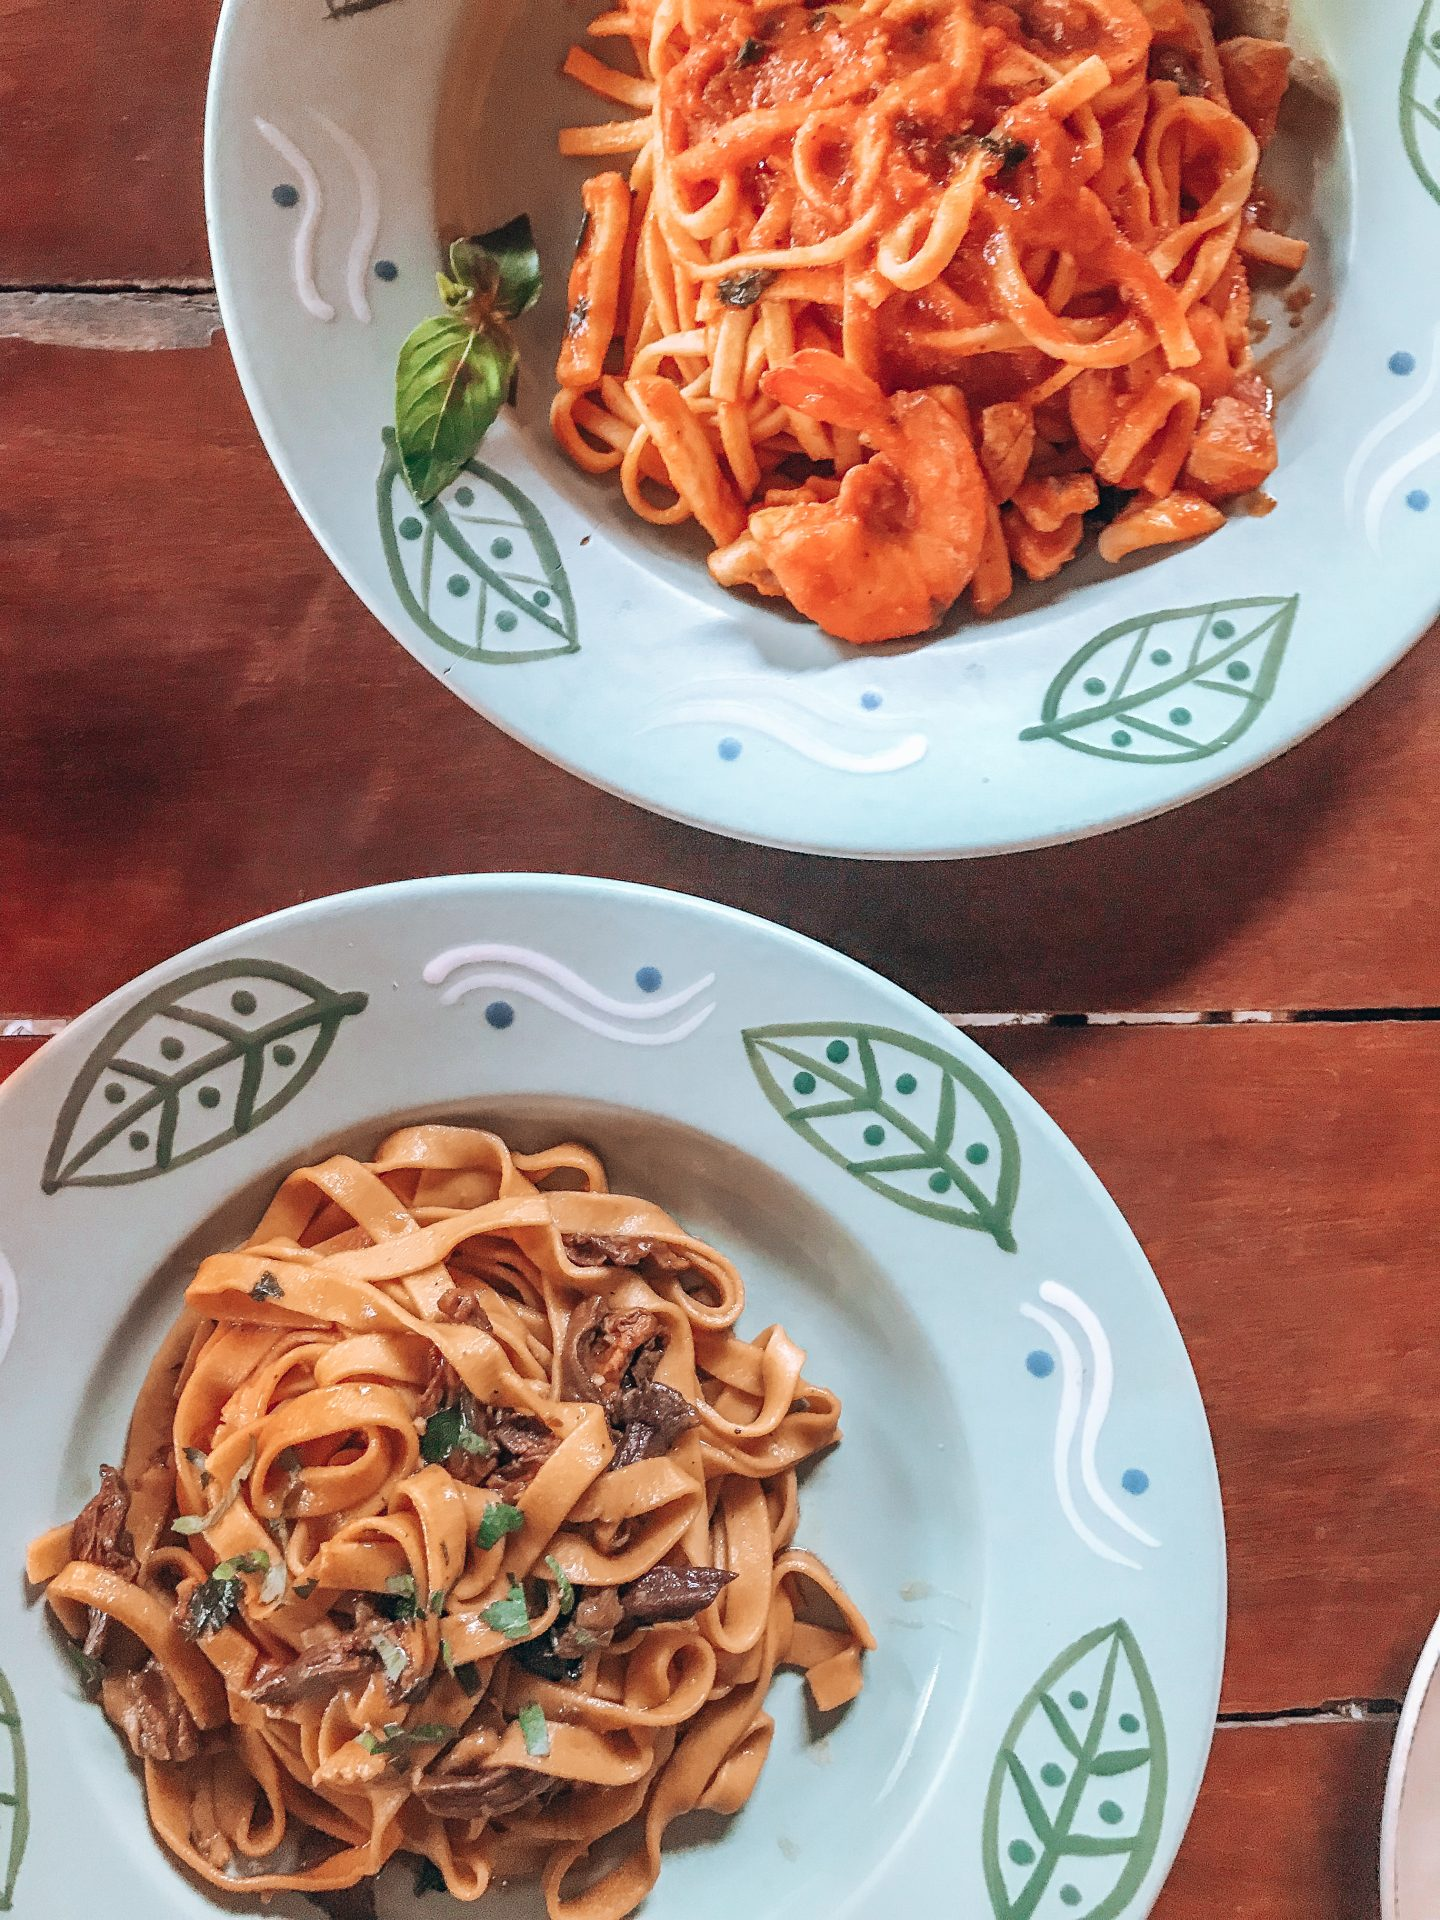 veggie food siargao: Two bowls of pasta at La Candineria